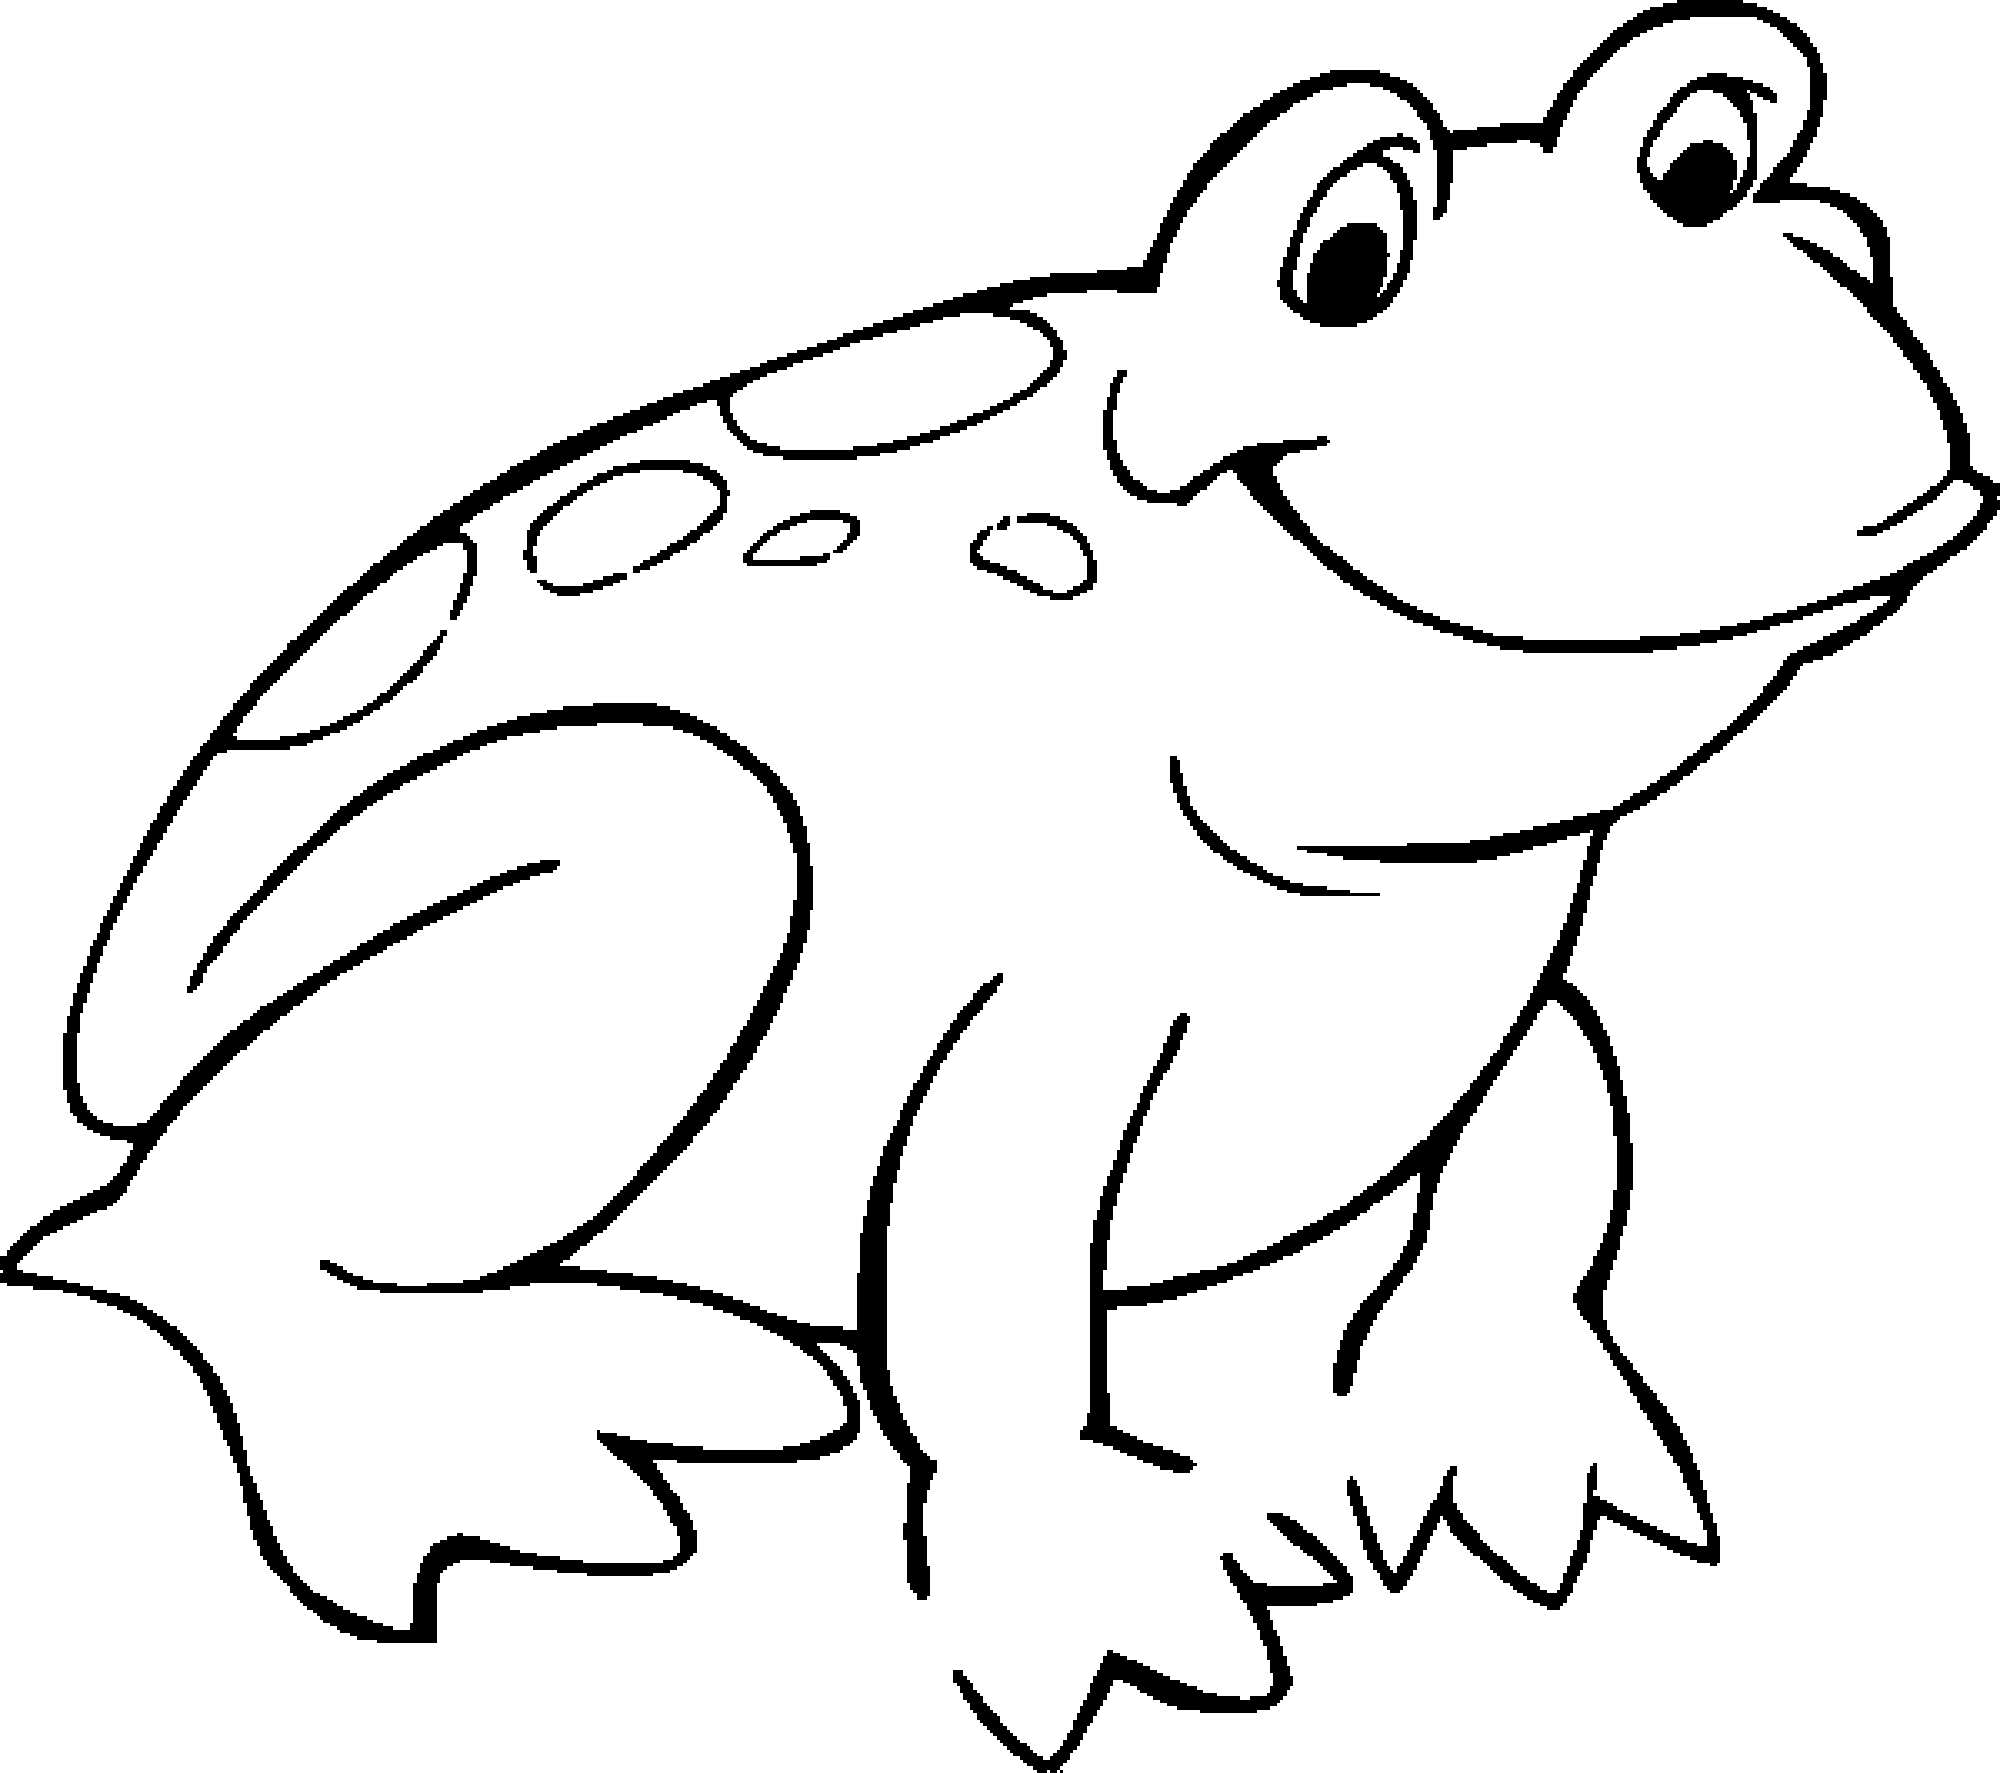 amphibian coloring pages | Realistic Frog Coloring Pages | Free download best ...